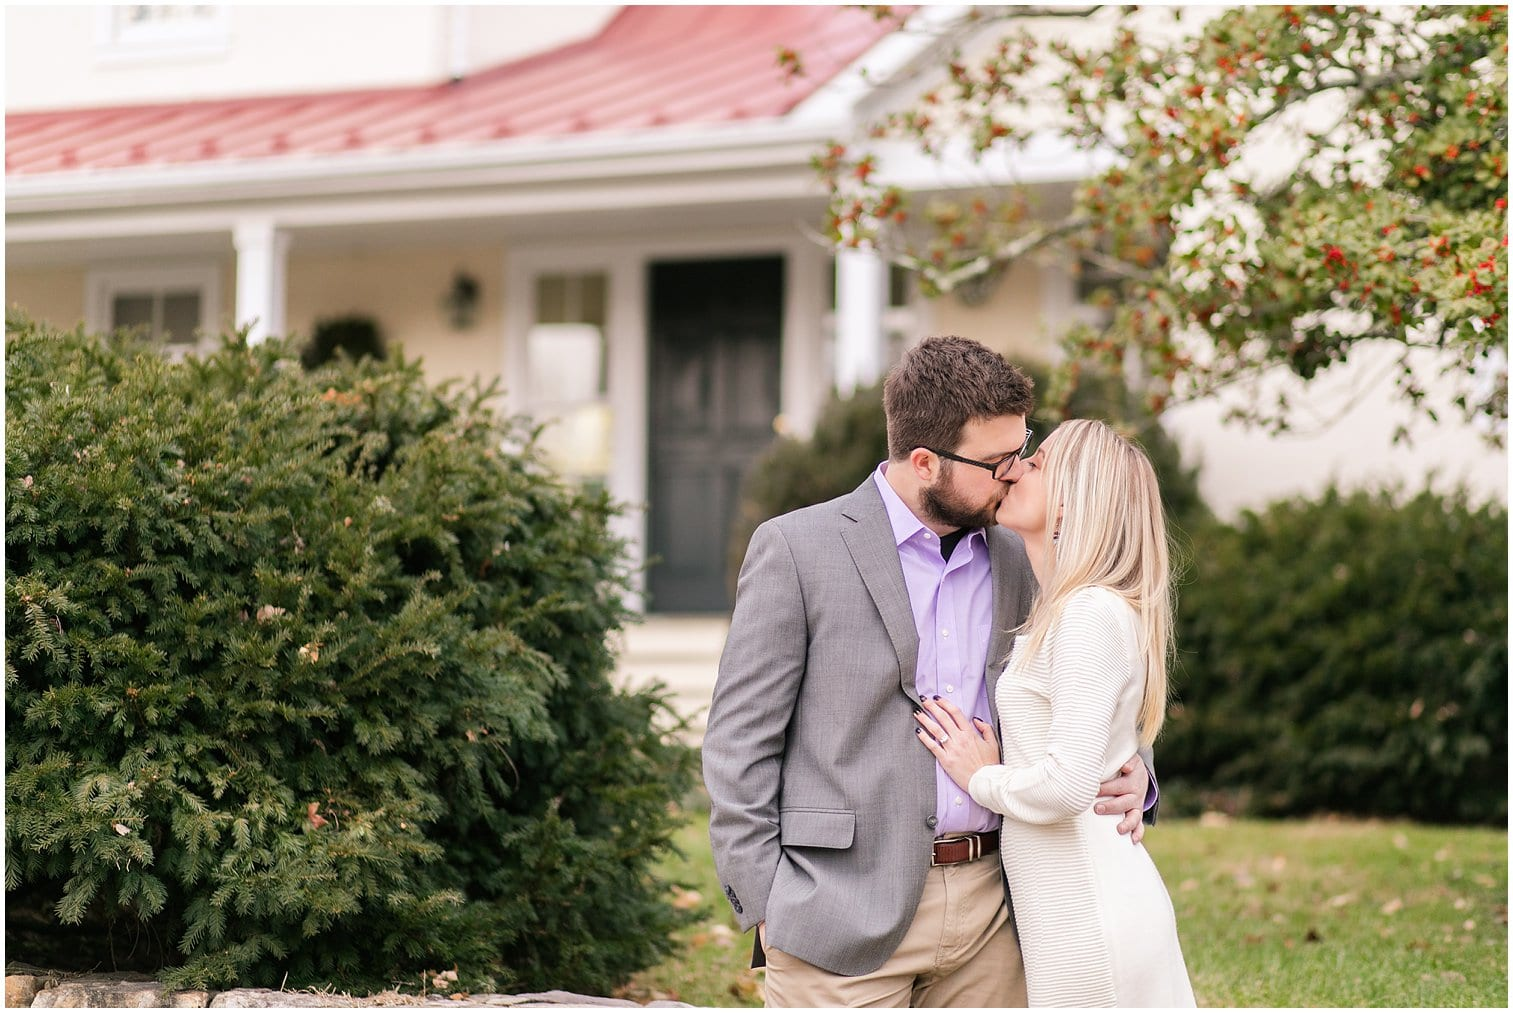 Downtown Middleburg Engagement Photos Virginia Wedding Photographer Megan Kelsey Photography Blair & Mike-194.jpg